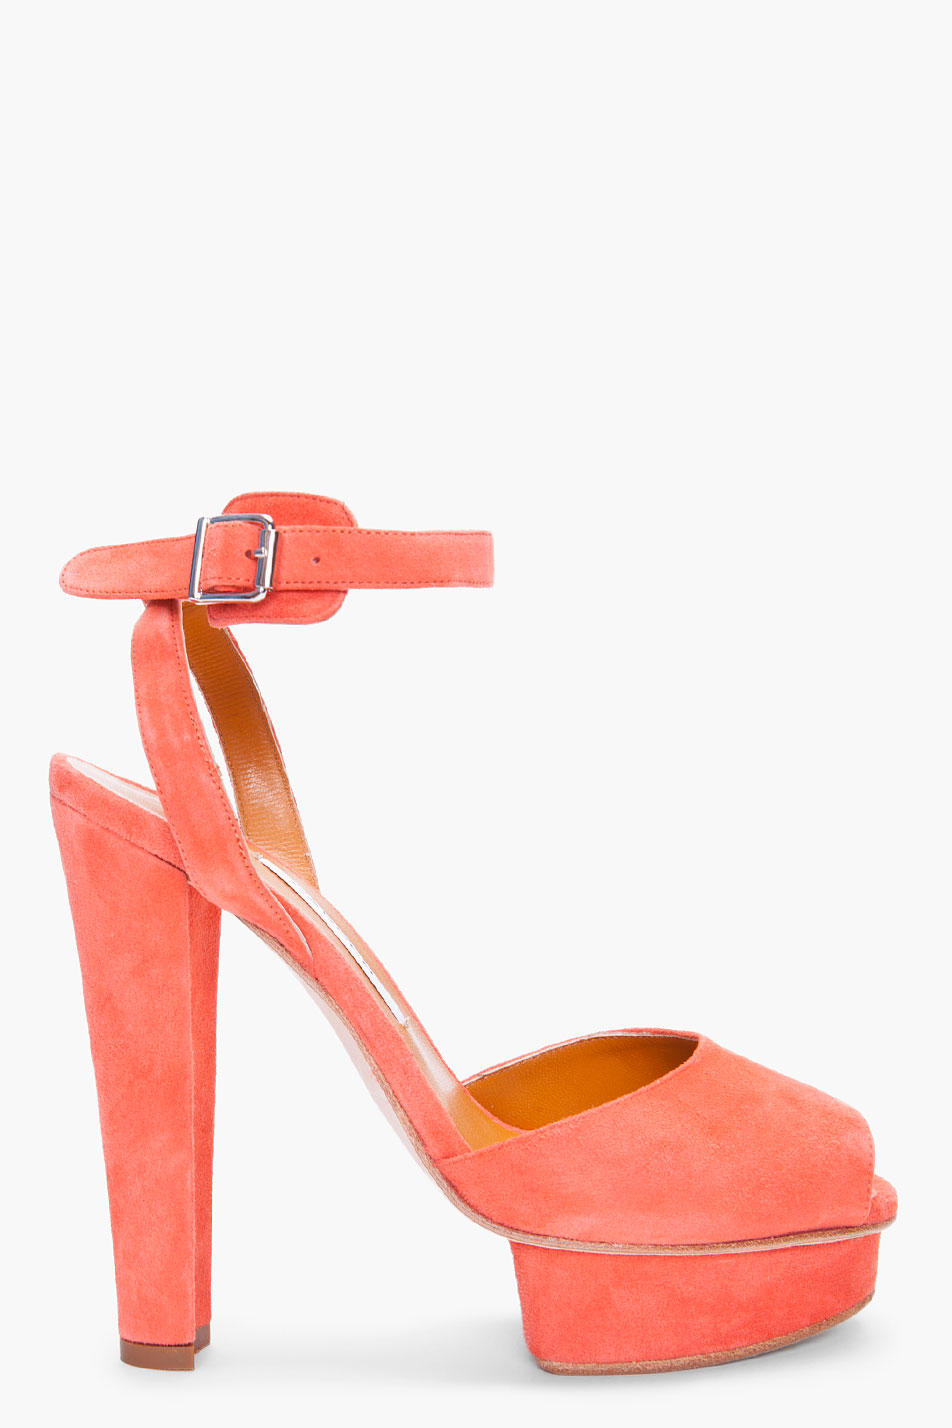 Carven Suede Peep-Toe Pumps discount comfortable clearance shopping online prices cheap online free shipping prices sale nicekicks OvLkXJiAjX